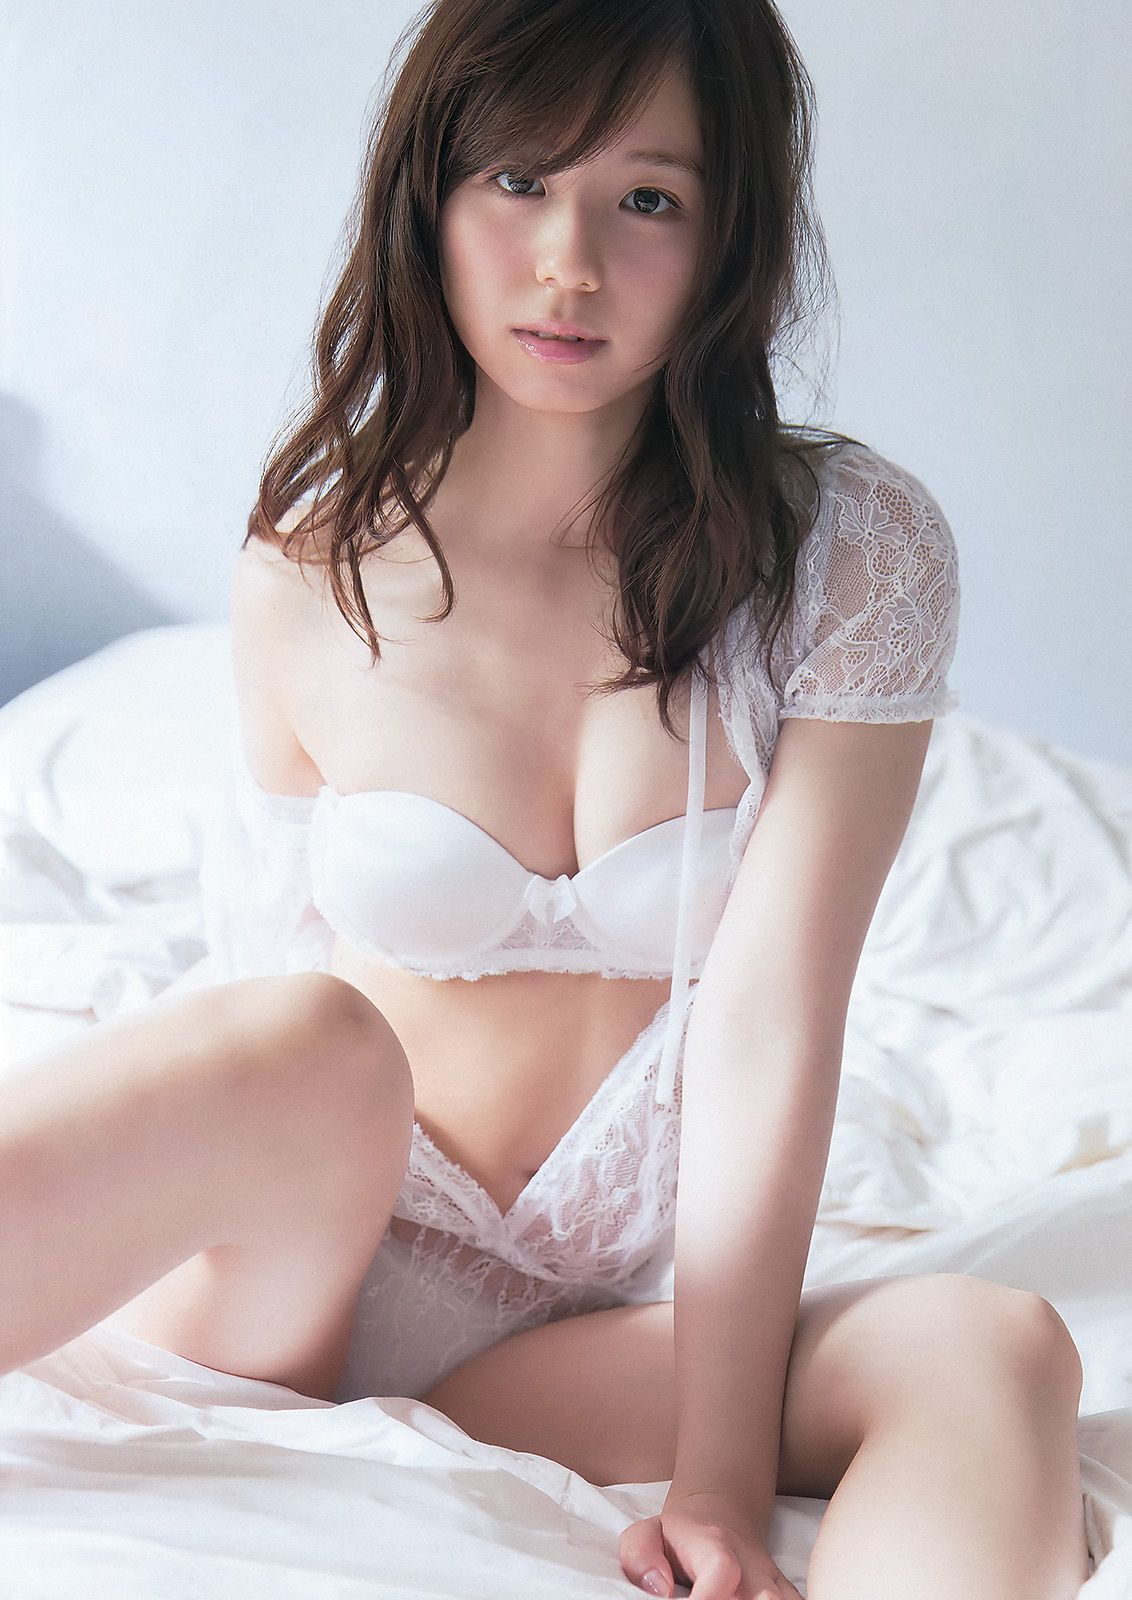 Males very young japanese models pictures fether thats